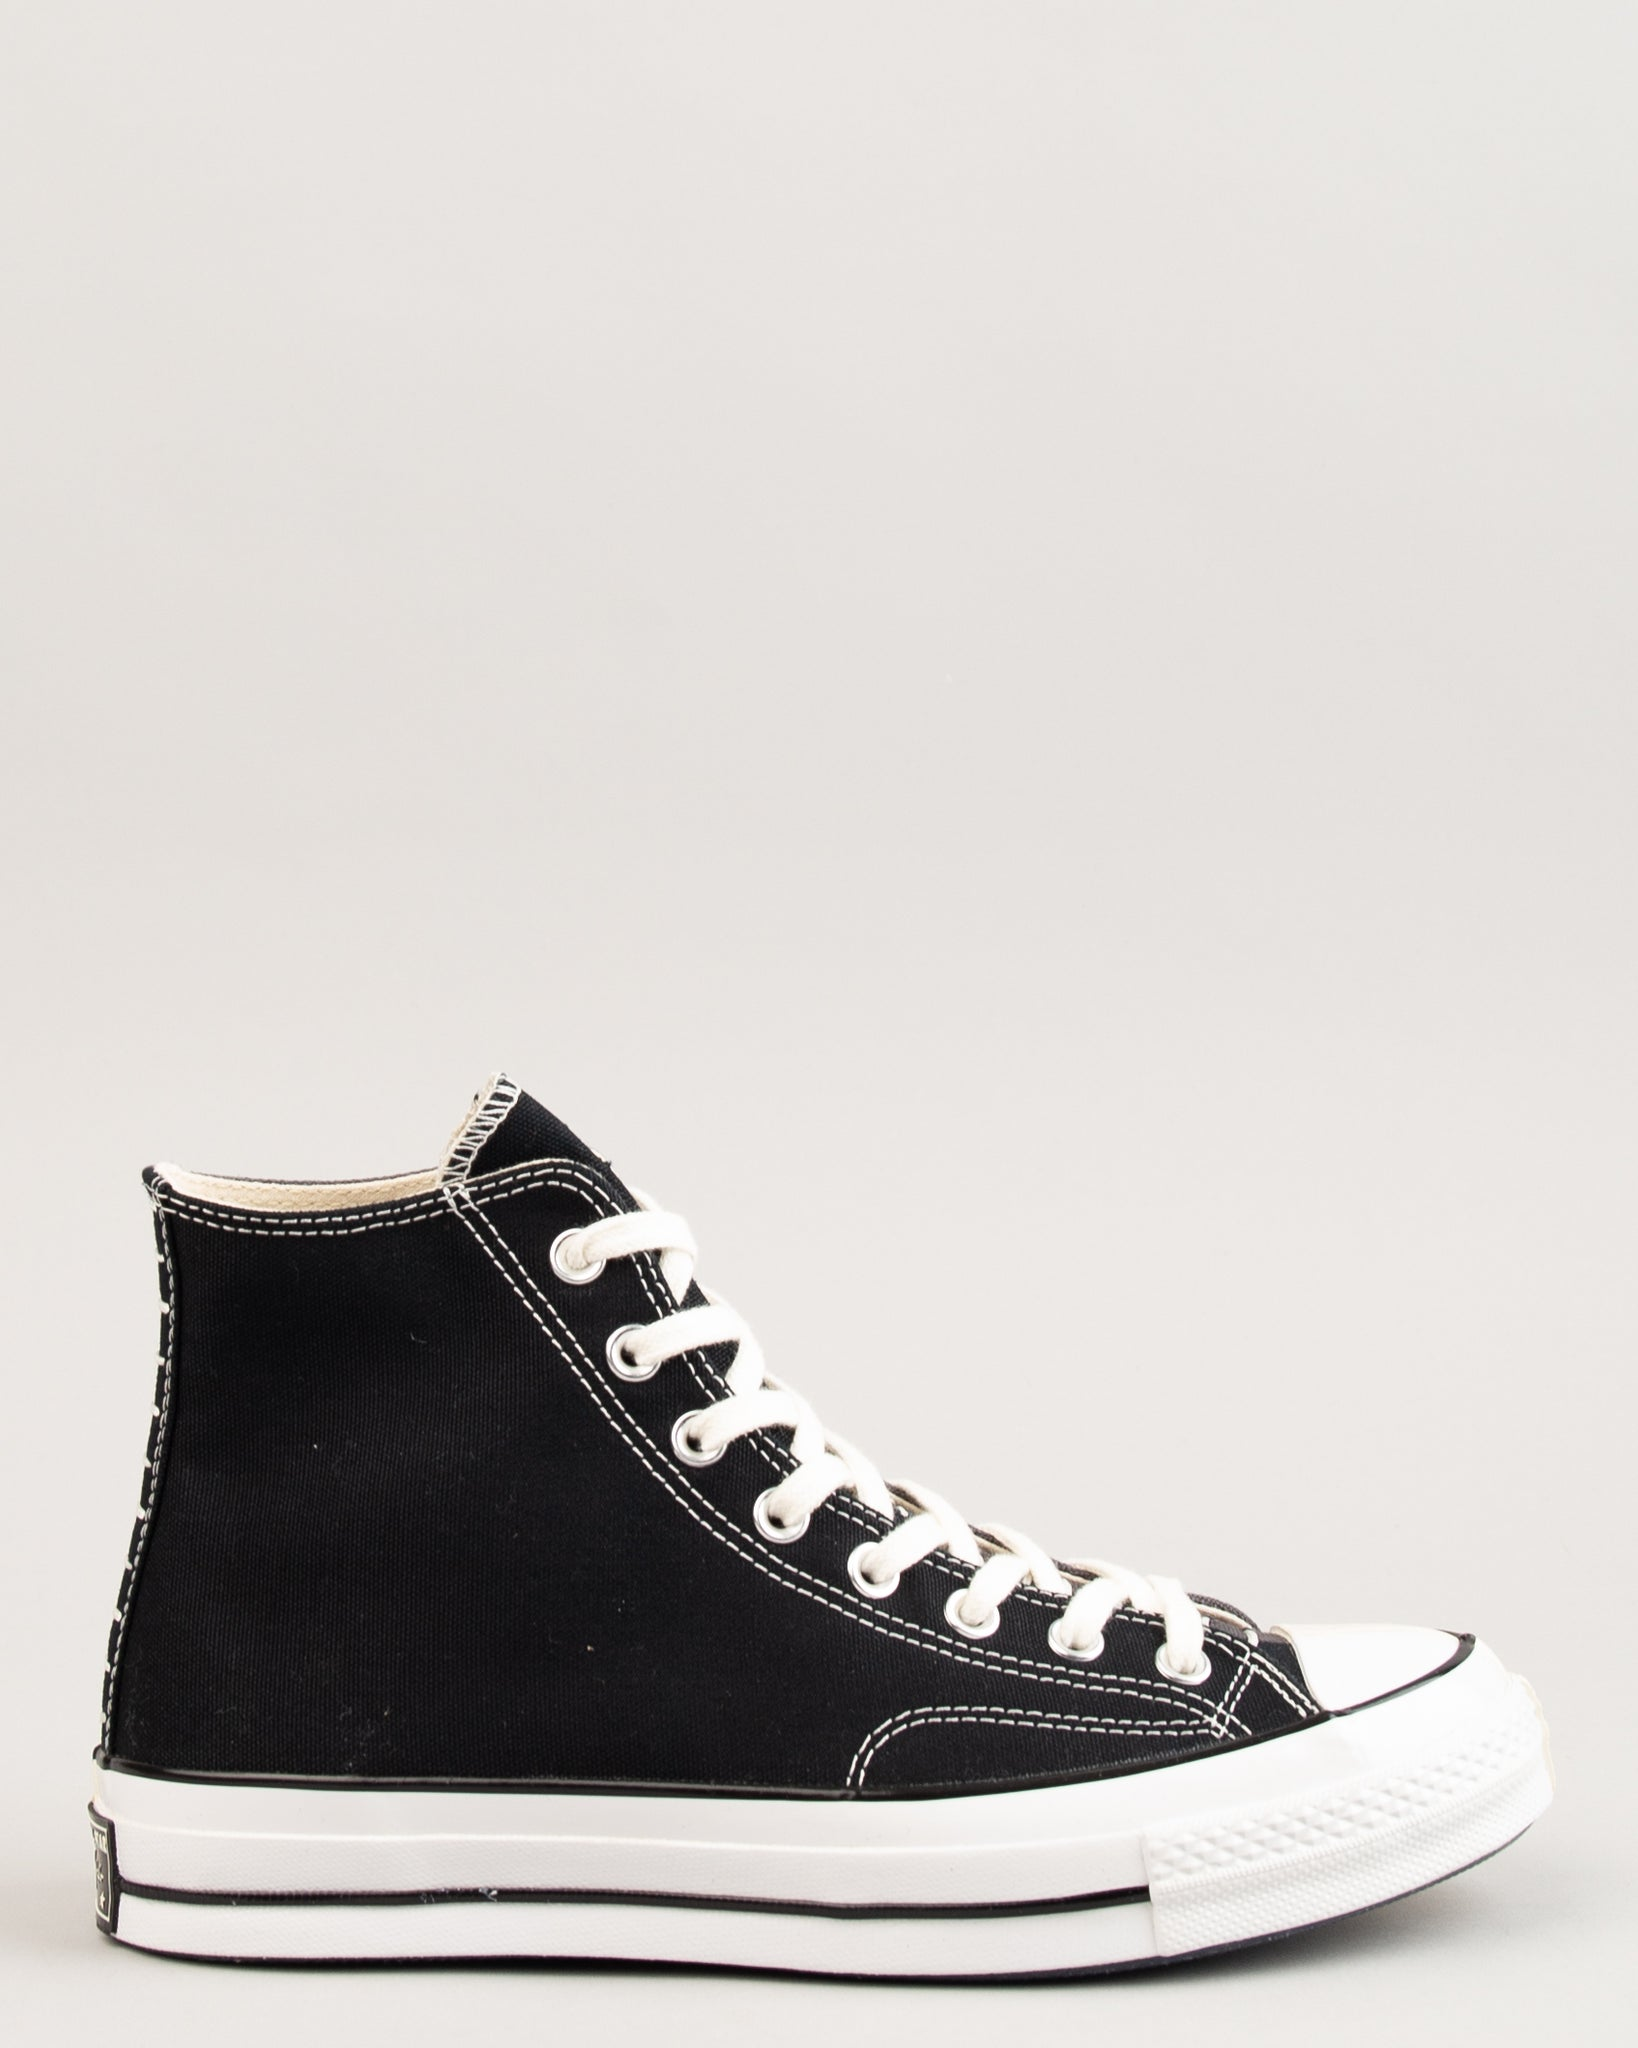 Restructured Chuck 70 HI Black/Almost Black/Egret